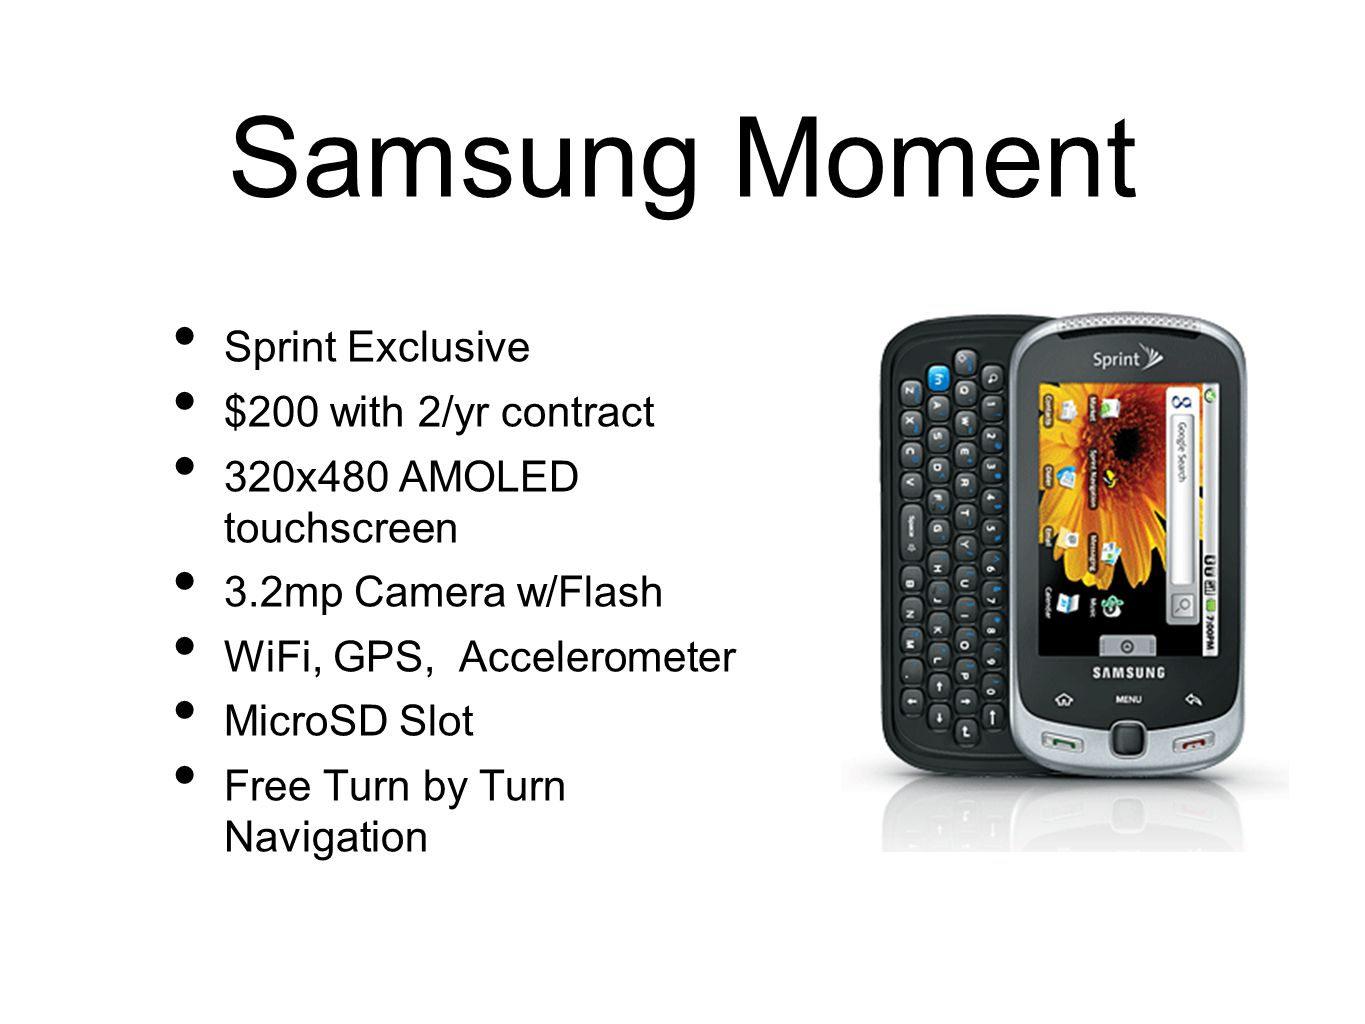 Samsung Moment Sprint Exclusive $200 with 2/yr contract